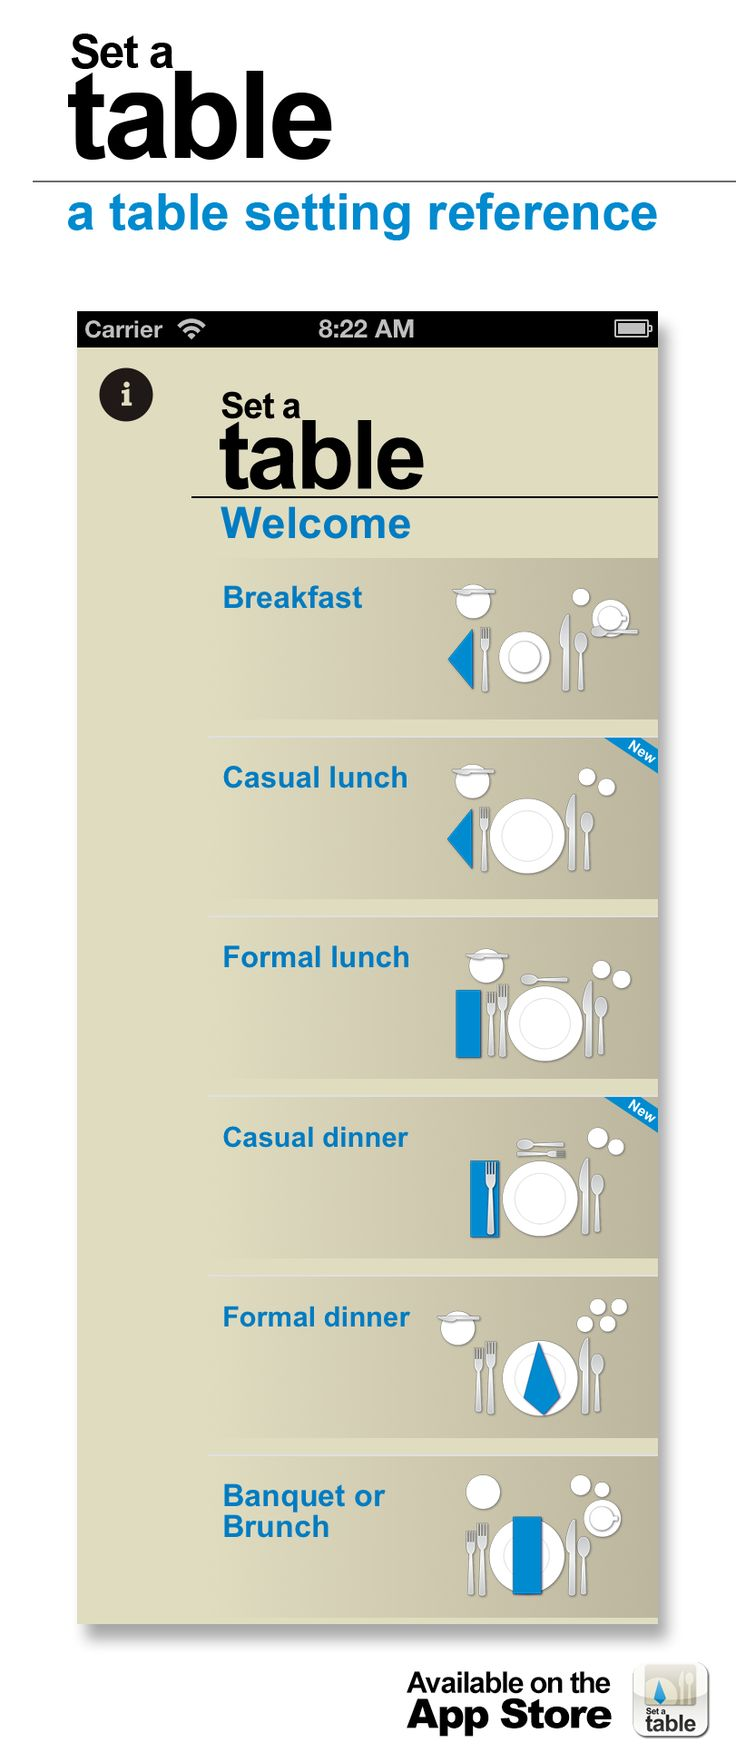 Set a table - a table setting reference for iPhone